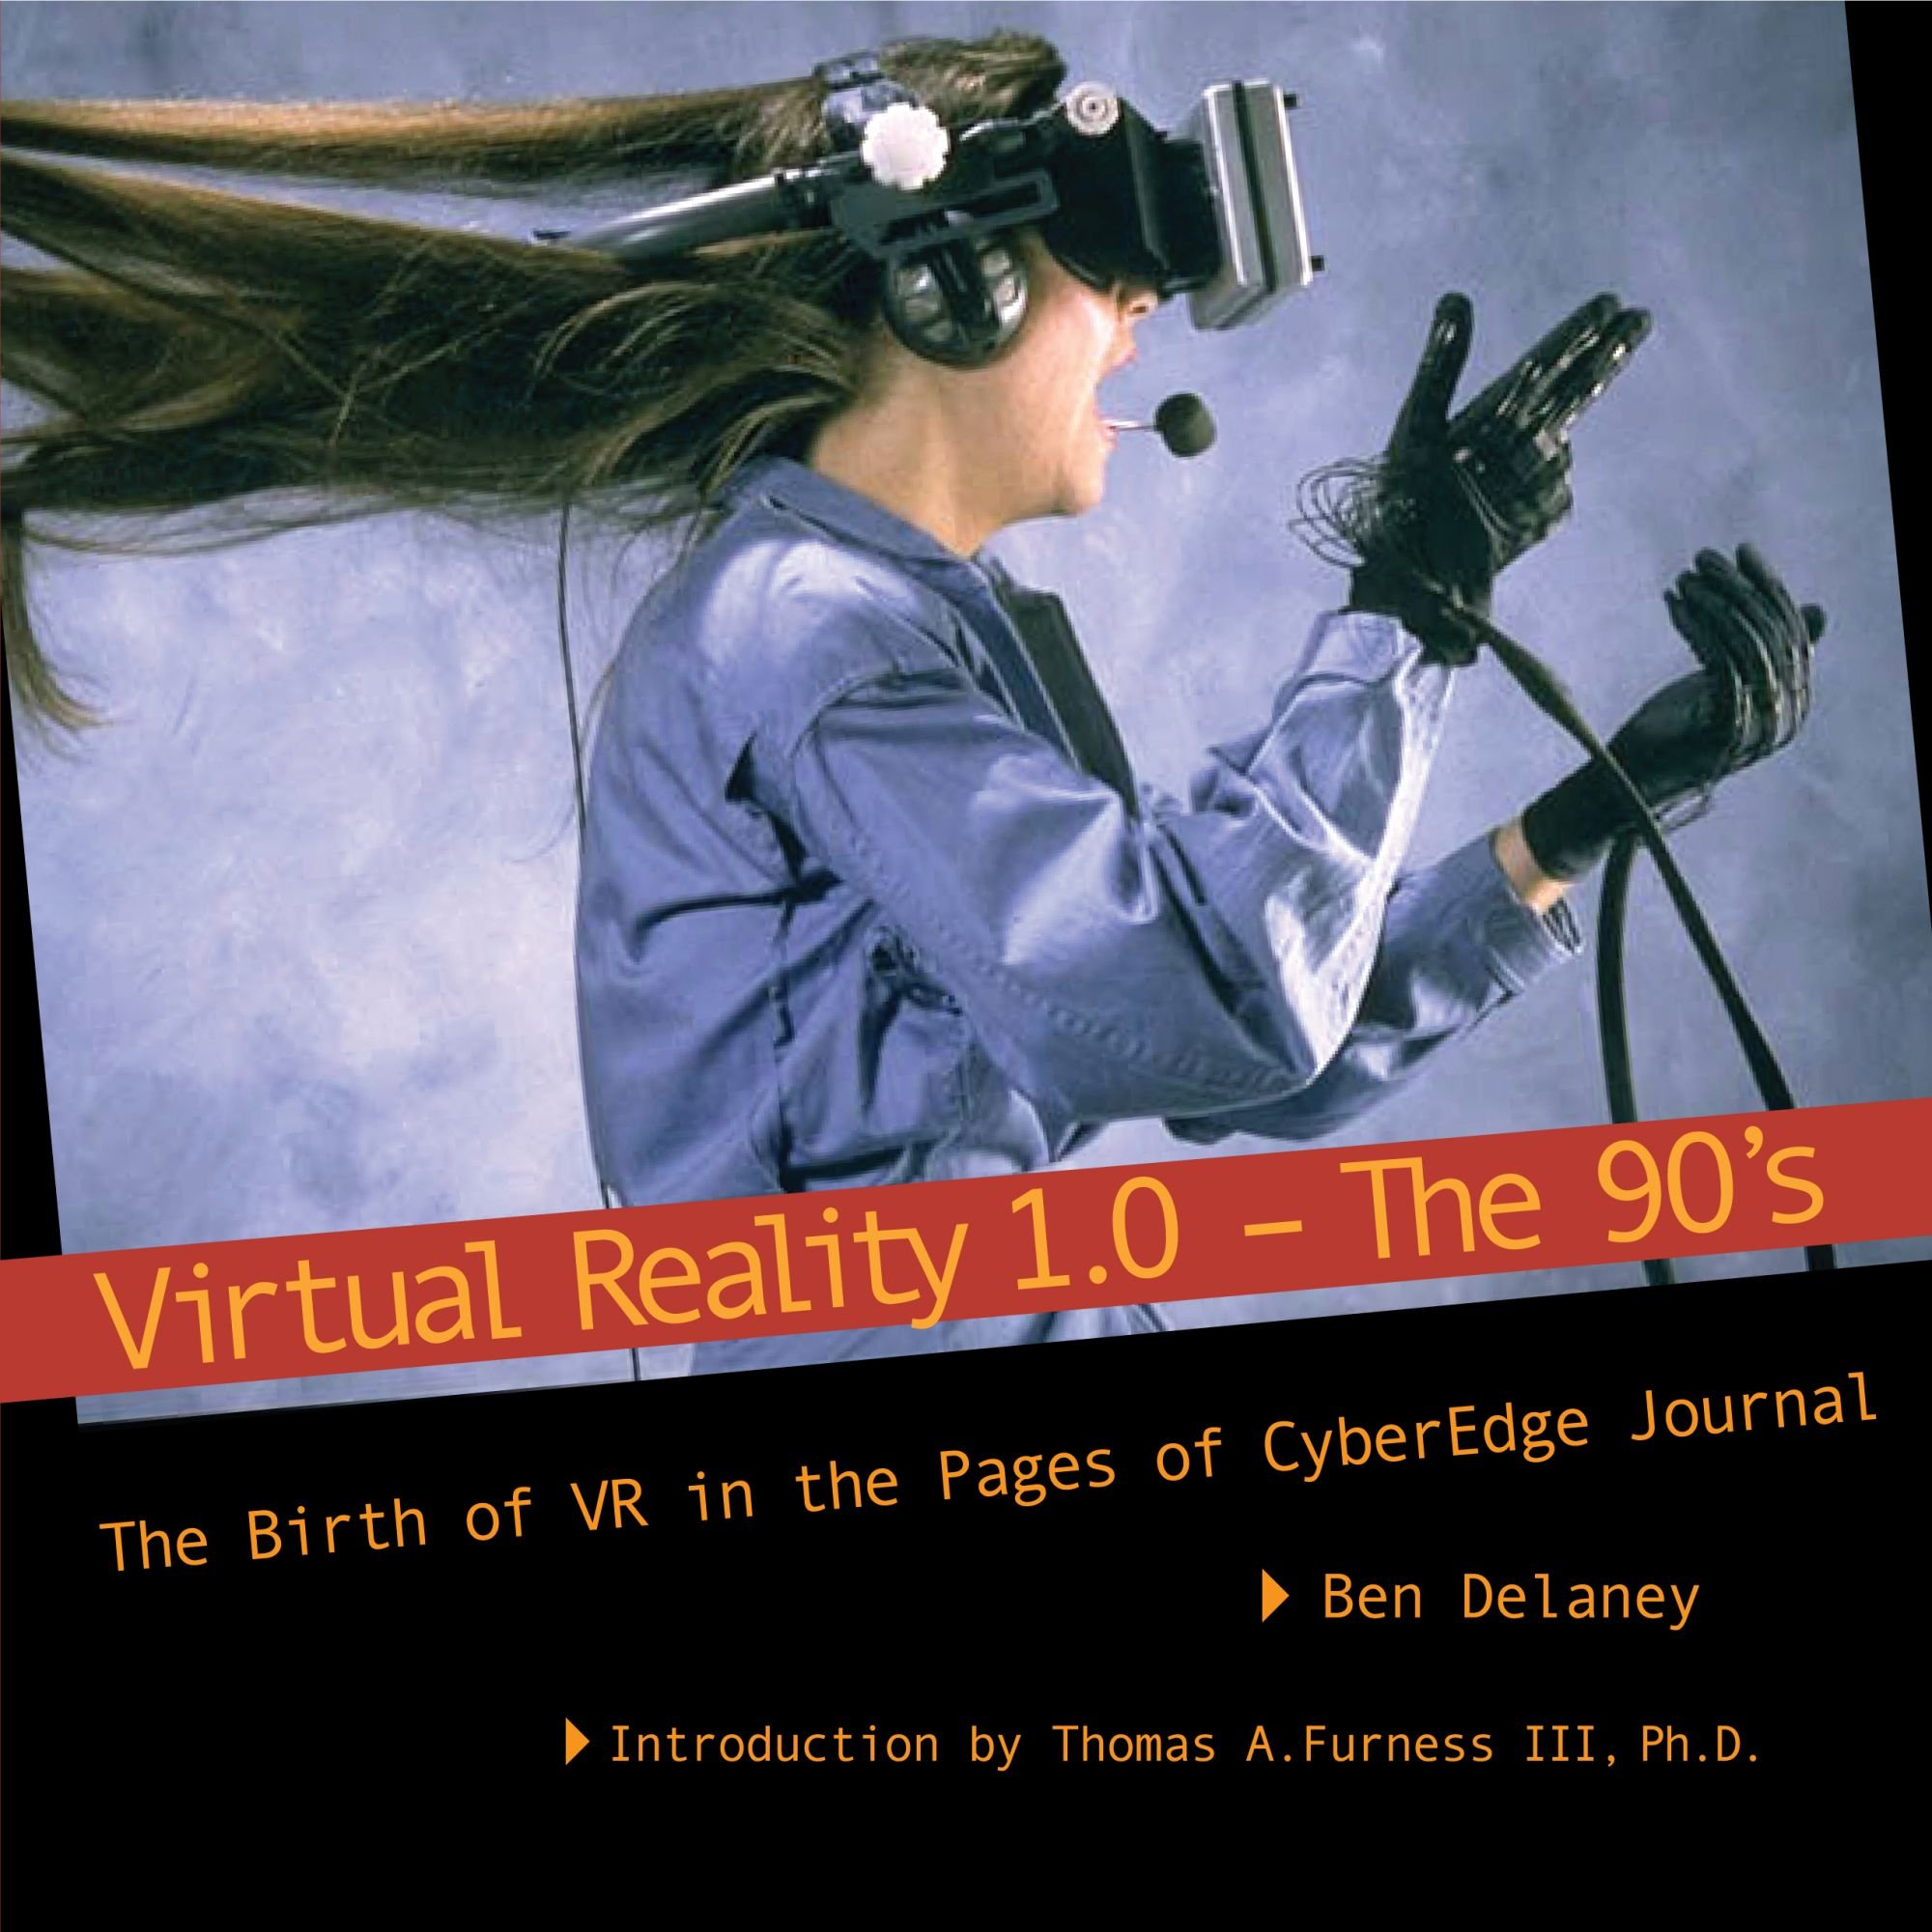 Virtual Reality 1.0 – the 90's cover image